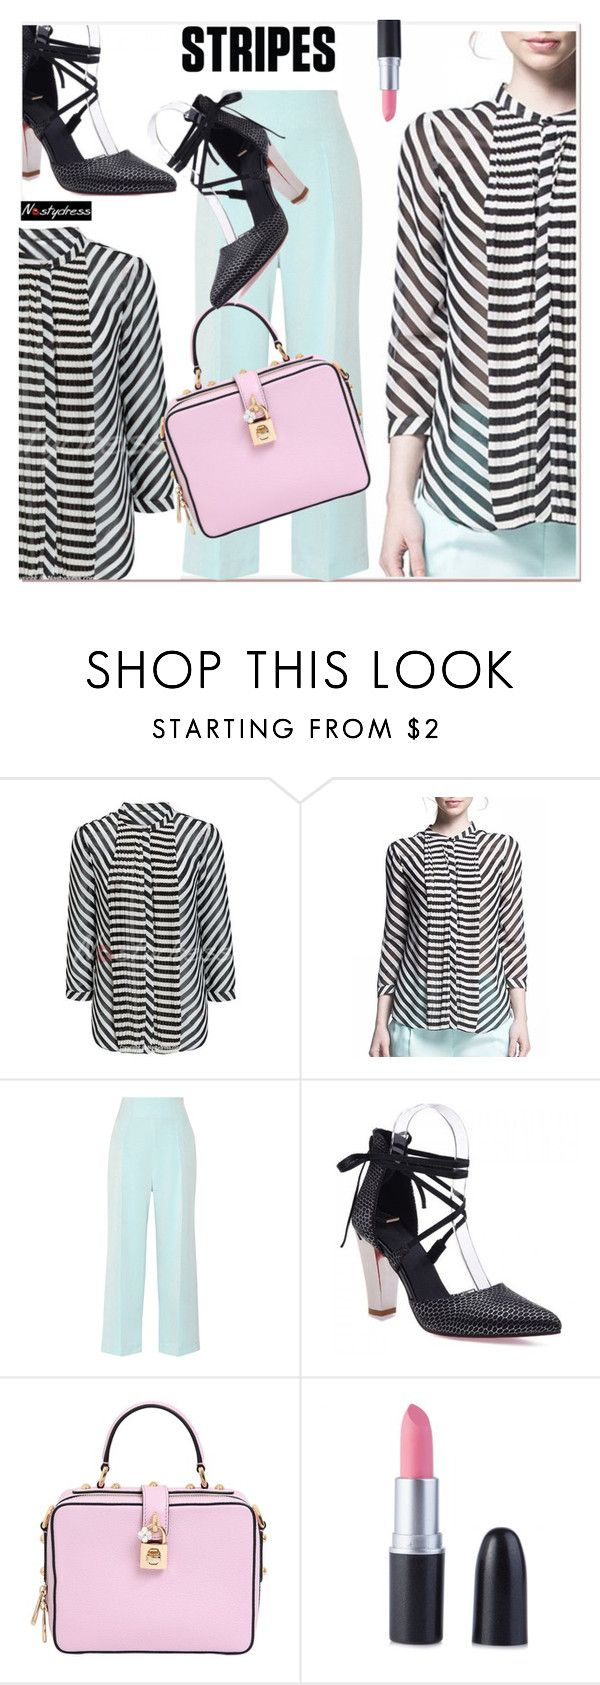 Design t shirt one direction -  One Direction Striped Shirts 6 By Paculi Liked On Polyvore Featuring